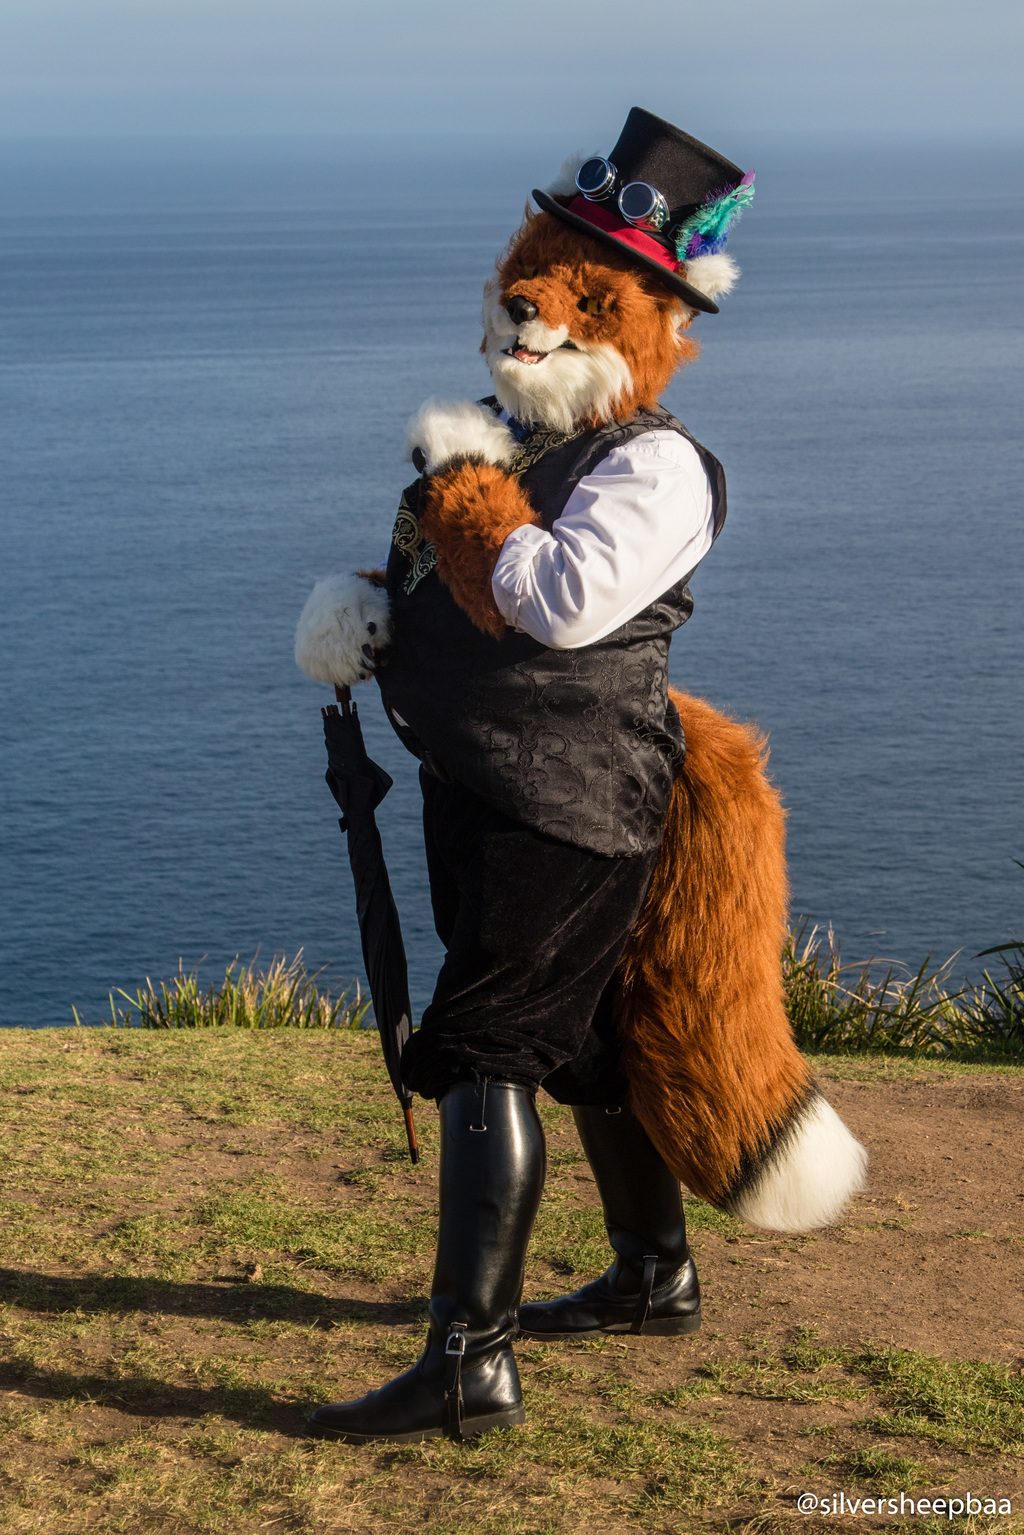 Bald Hill: A Fox with a View